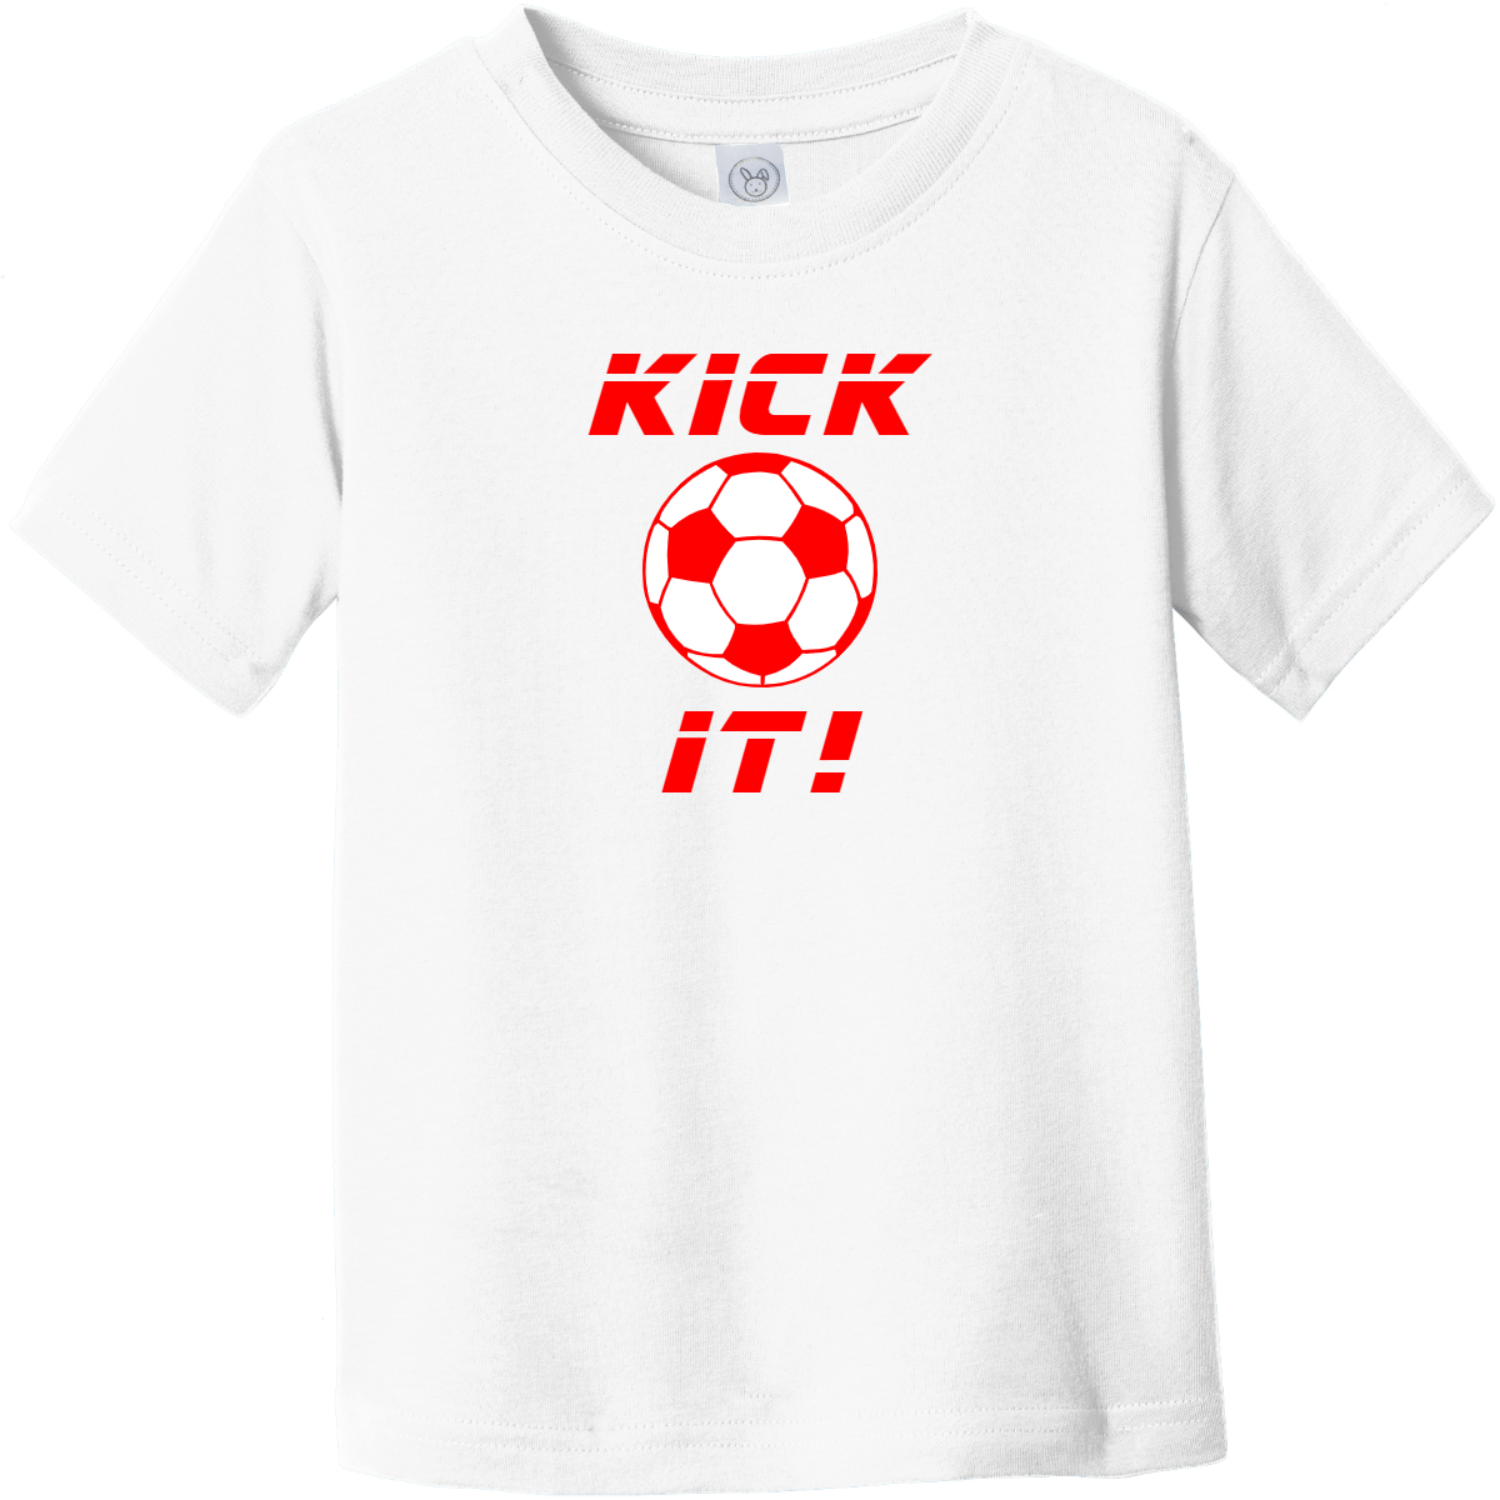 Kick It Soccer Toddler T-Shirt White Rabbit Skins Toddler Fine Jersey Tee RS3321